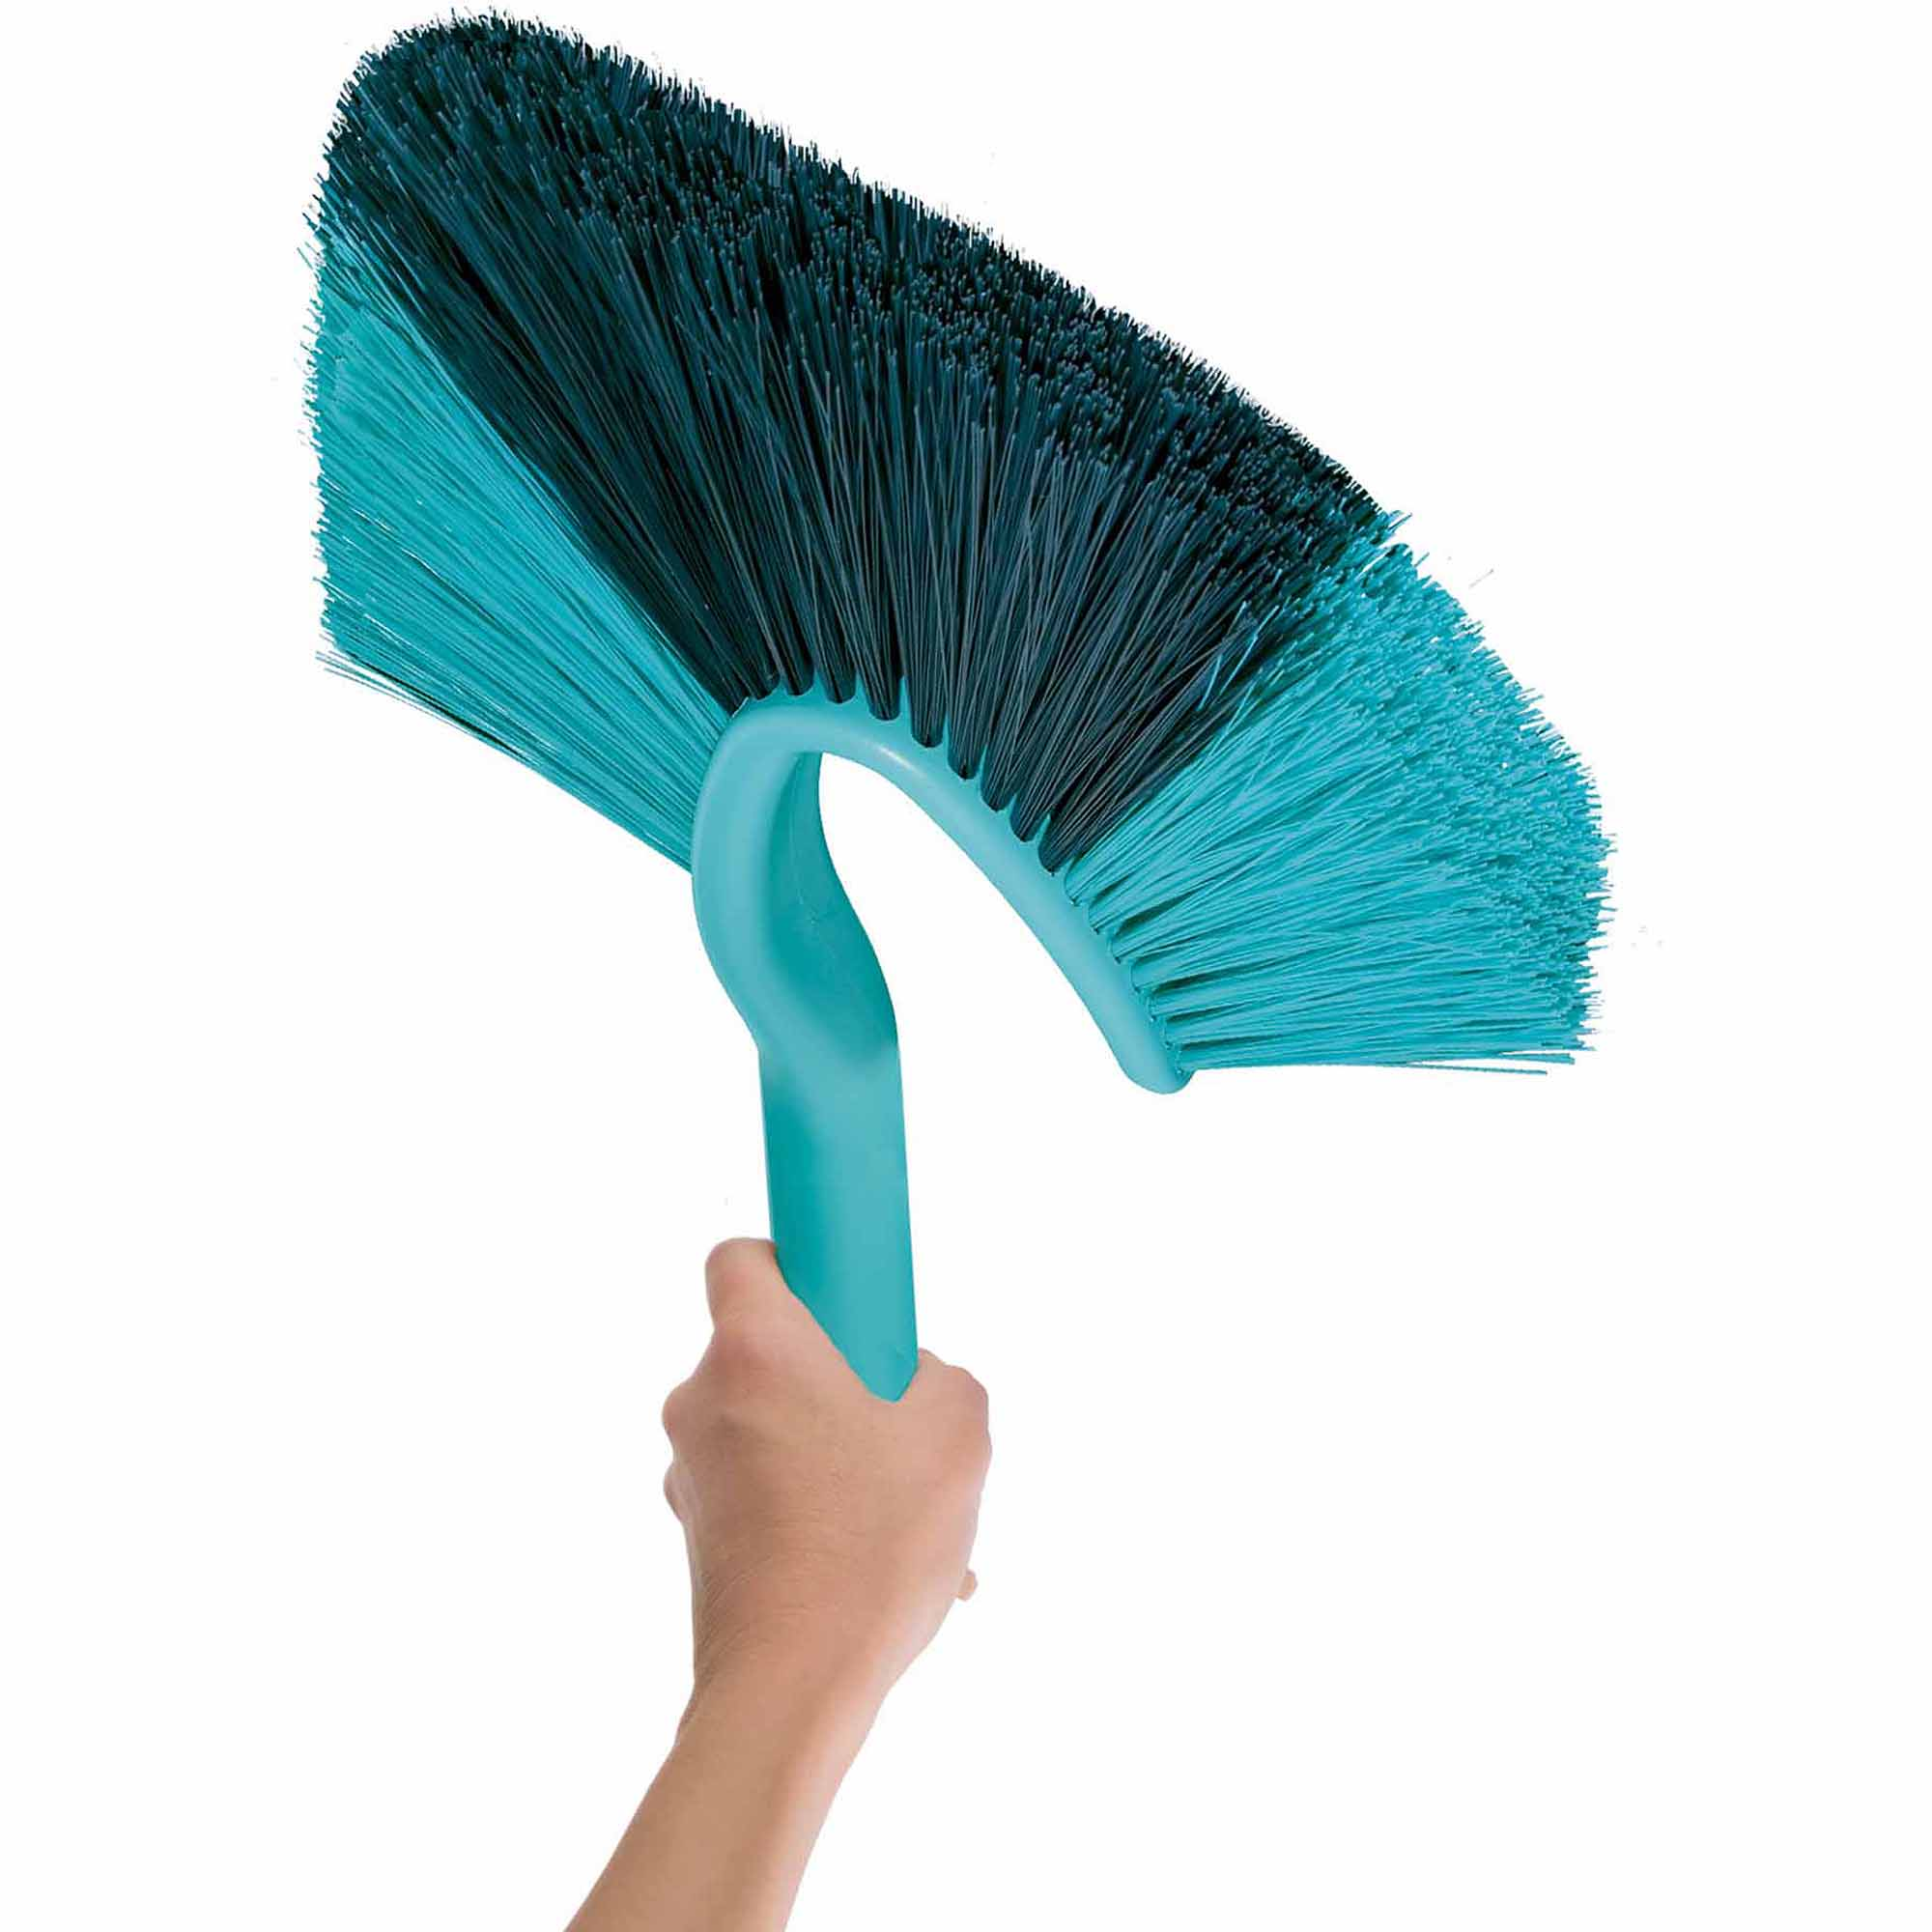 Leifheit Click System Stiff-Bristled High Duster for Corners, Turquoise